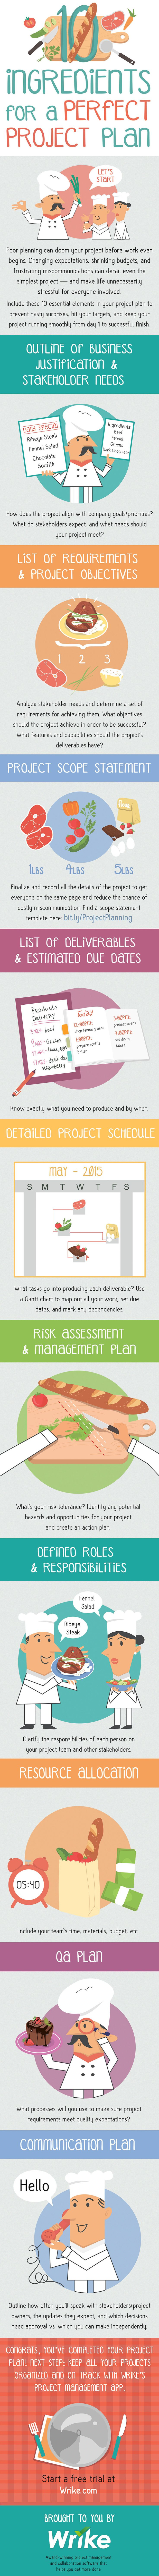 10 Essential Elements for the Perfect Project Plan [by Wrike -- via Tipsographic] #tipsographic